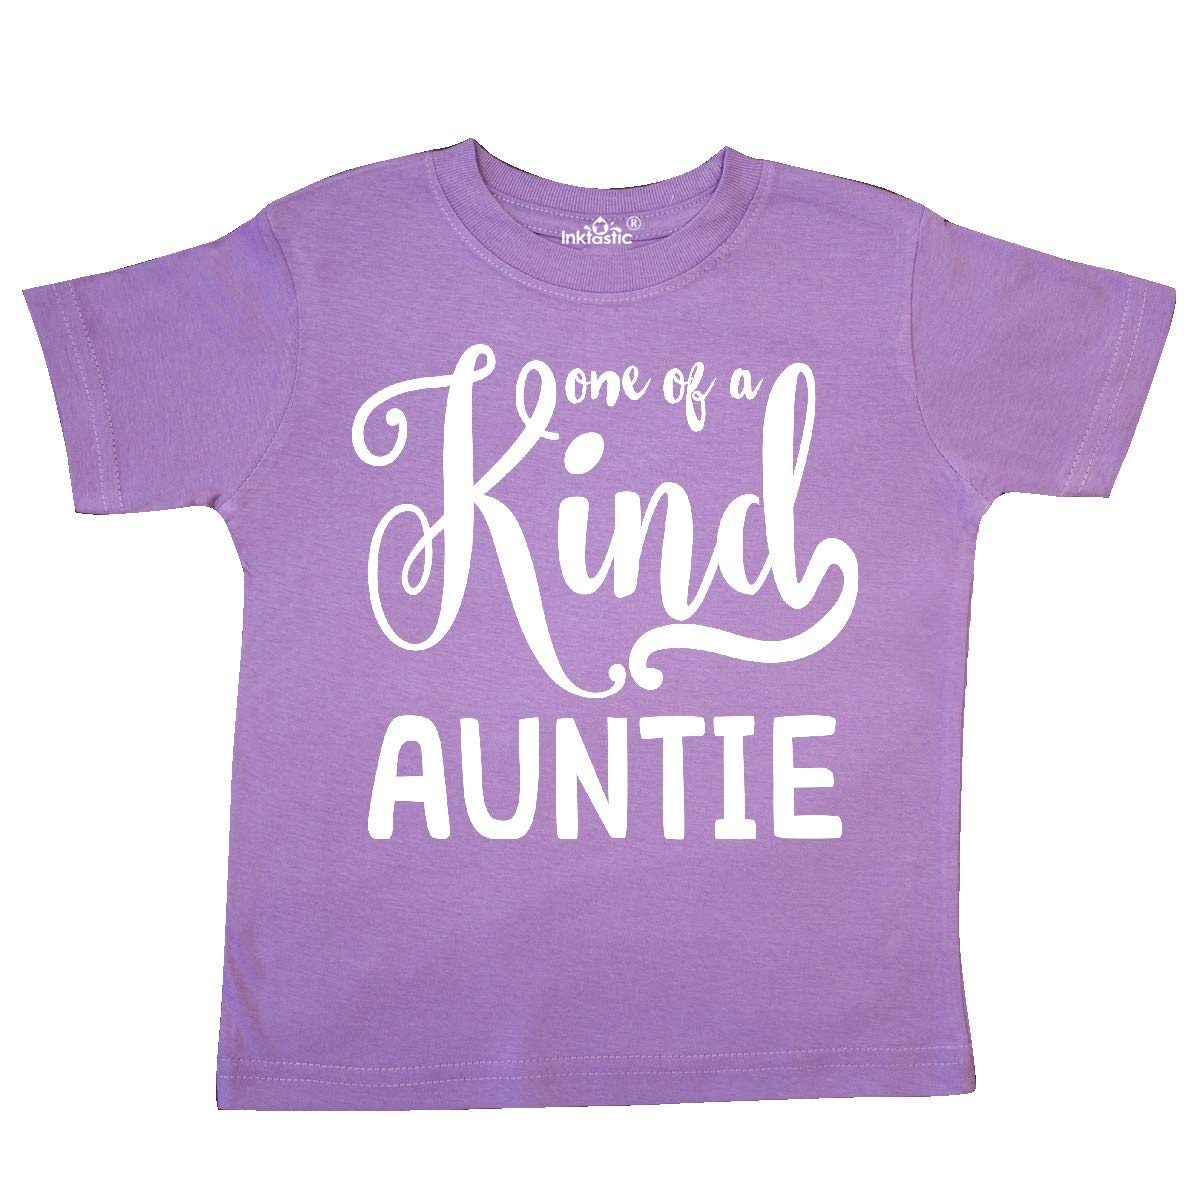 Toddler T-Shirt inktastic Gift for Aunts 1 of a Kind Auntie White